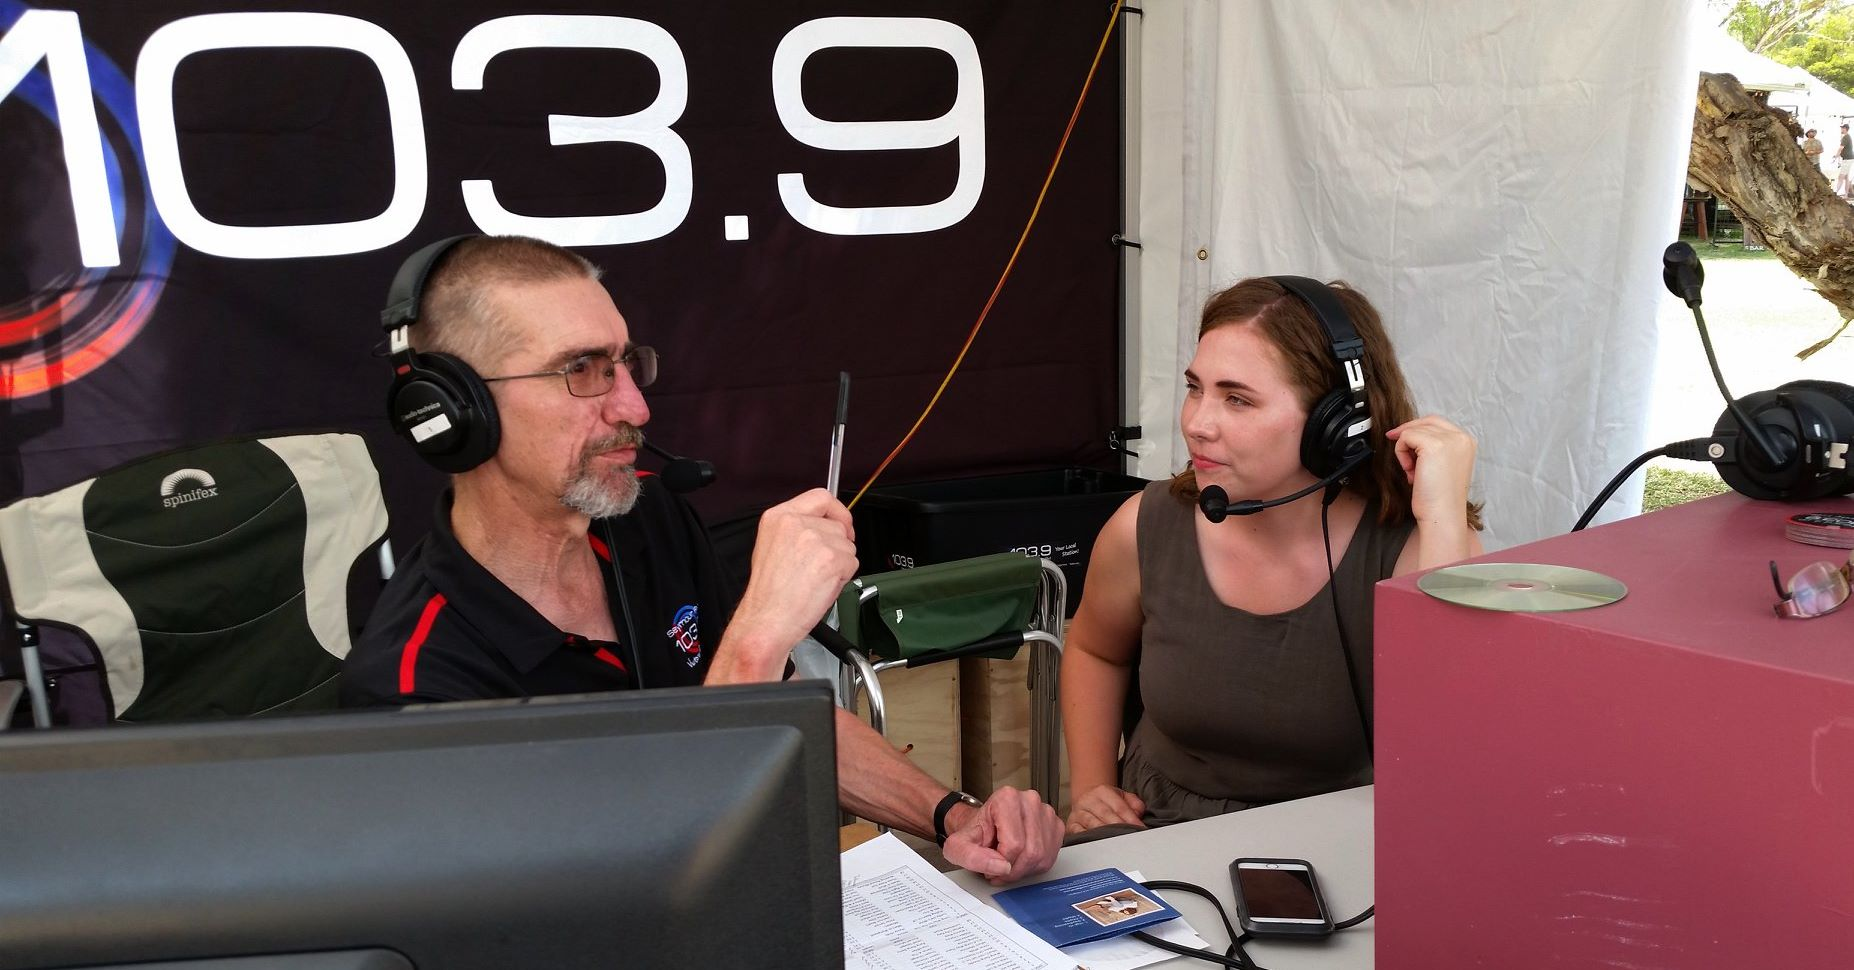 The Cleaner 1039 with Peter Wright on Seymour FM